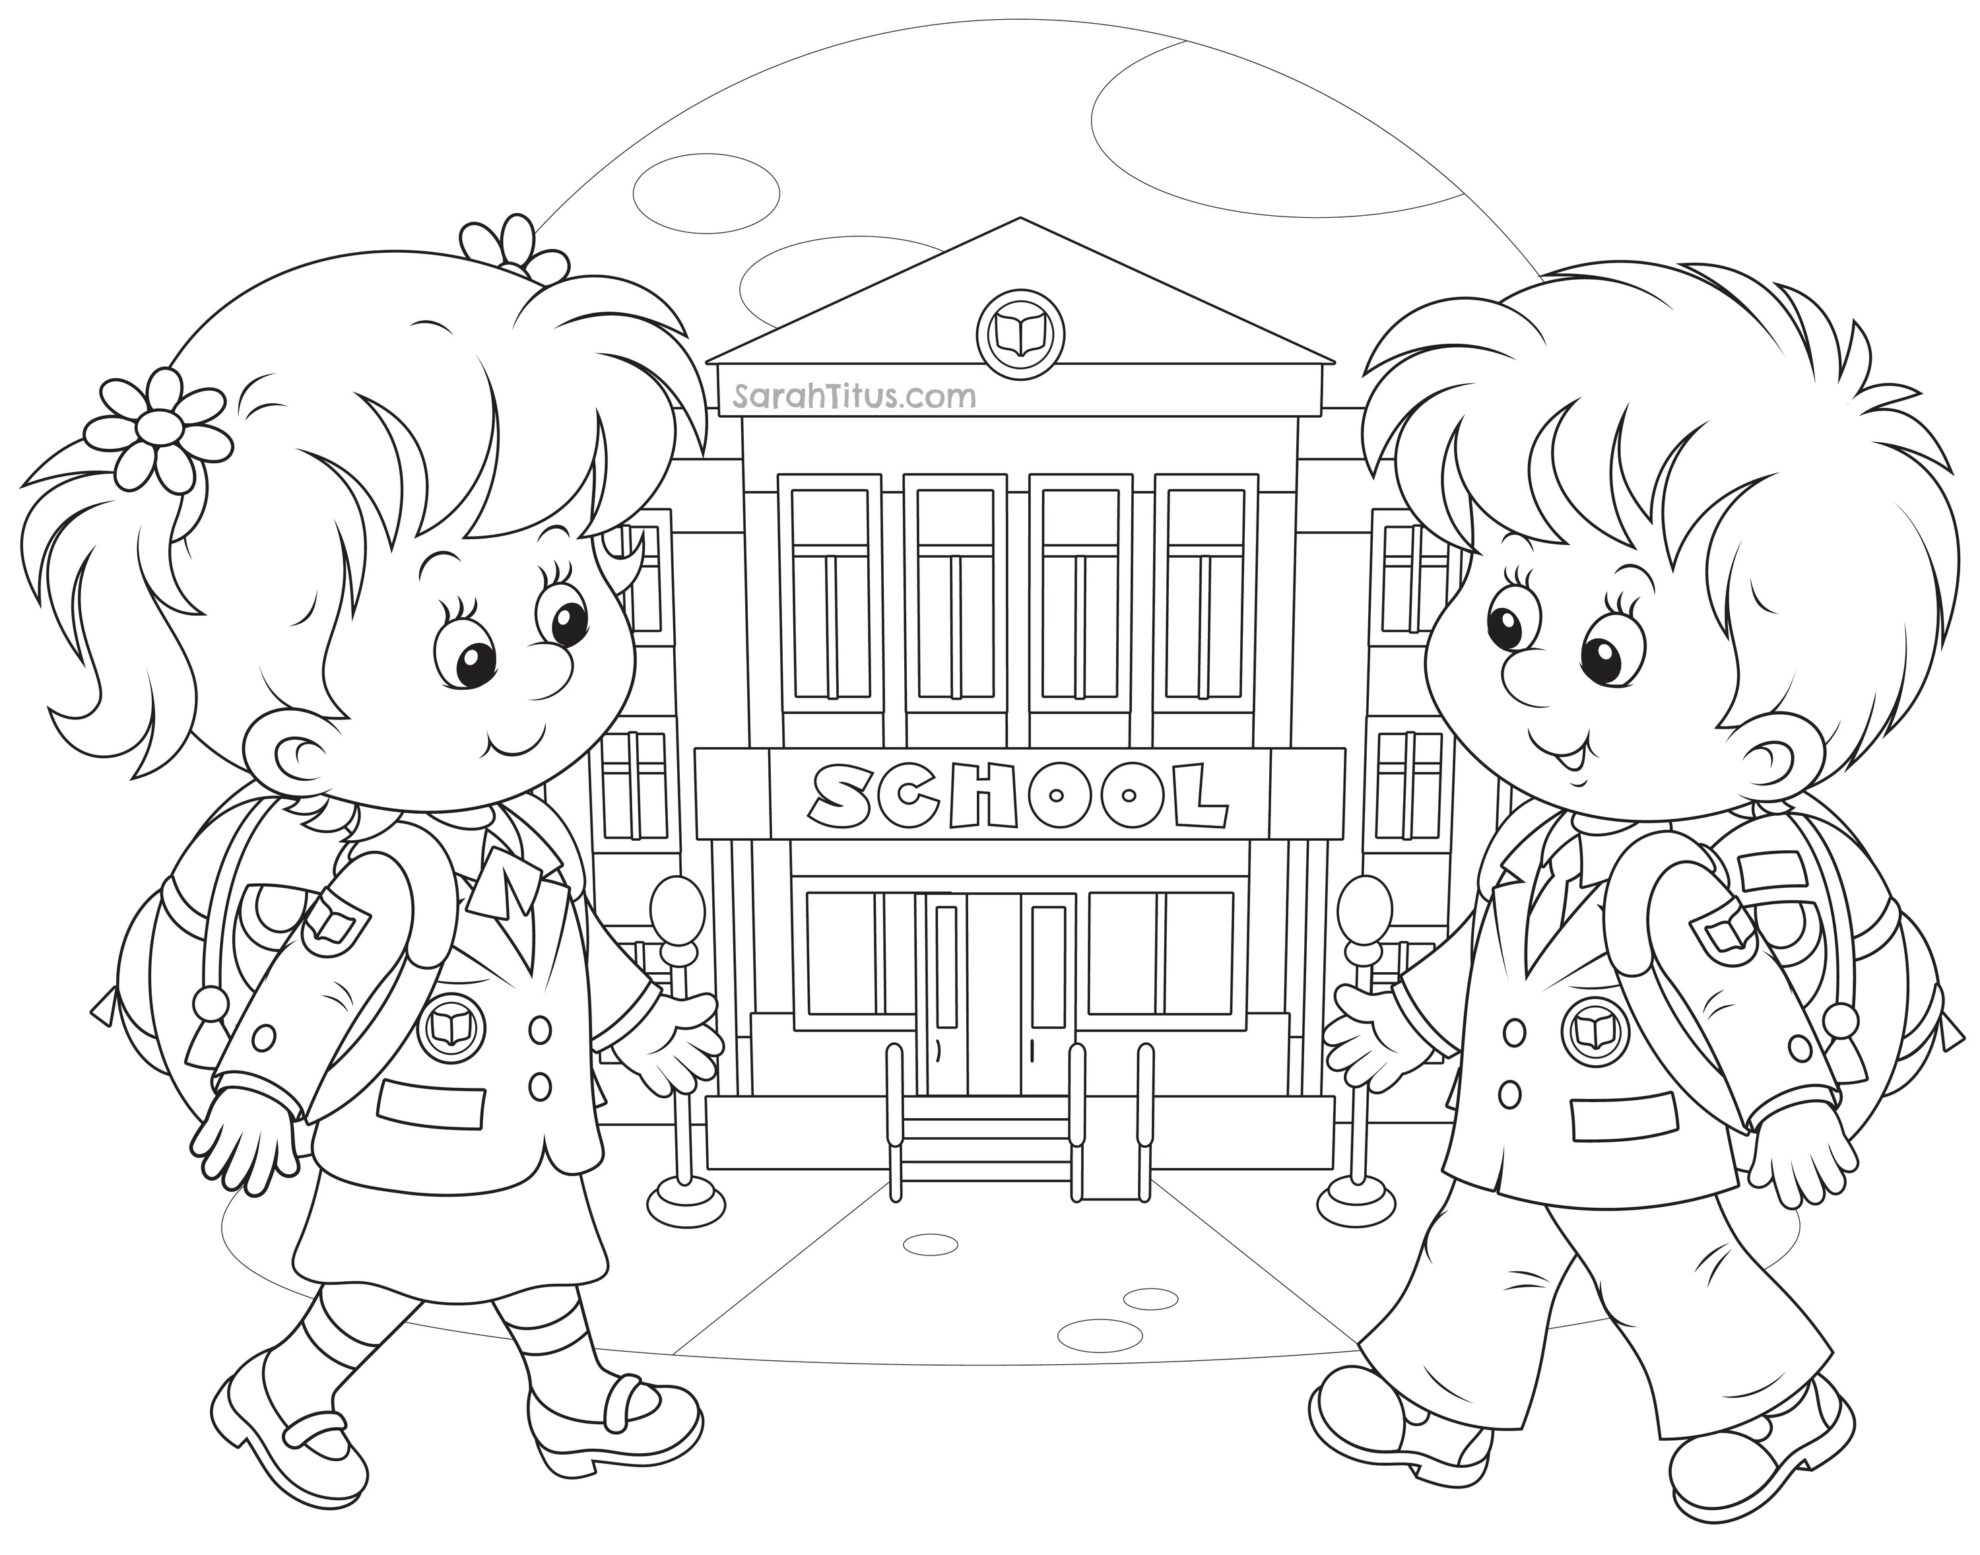 kindergarten coloring pages school - photo#17